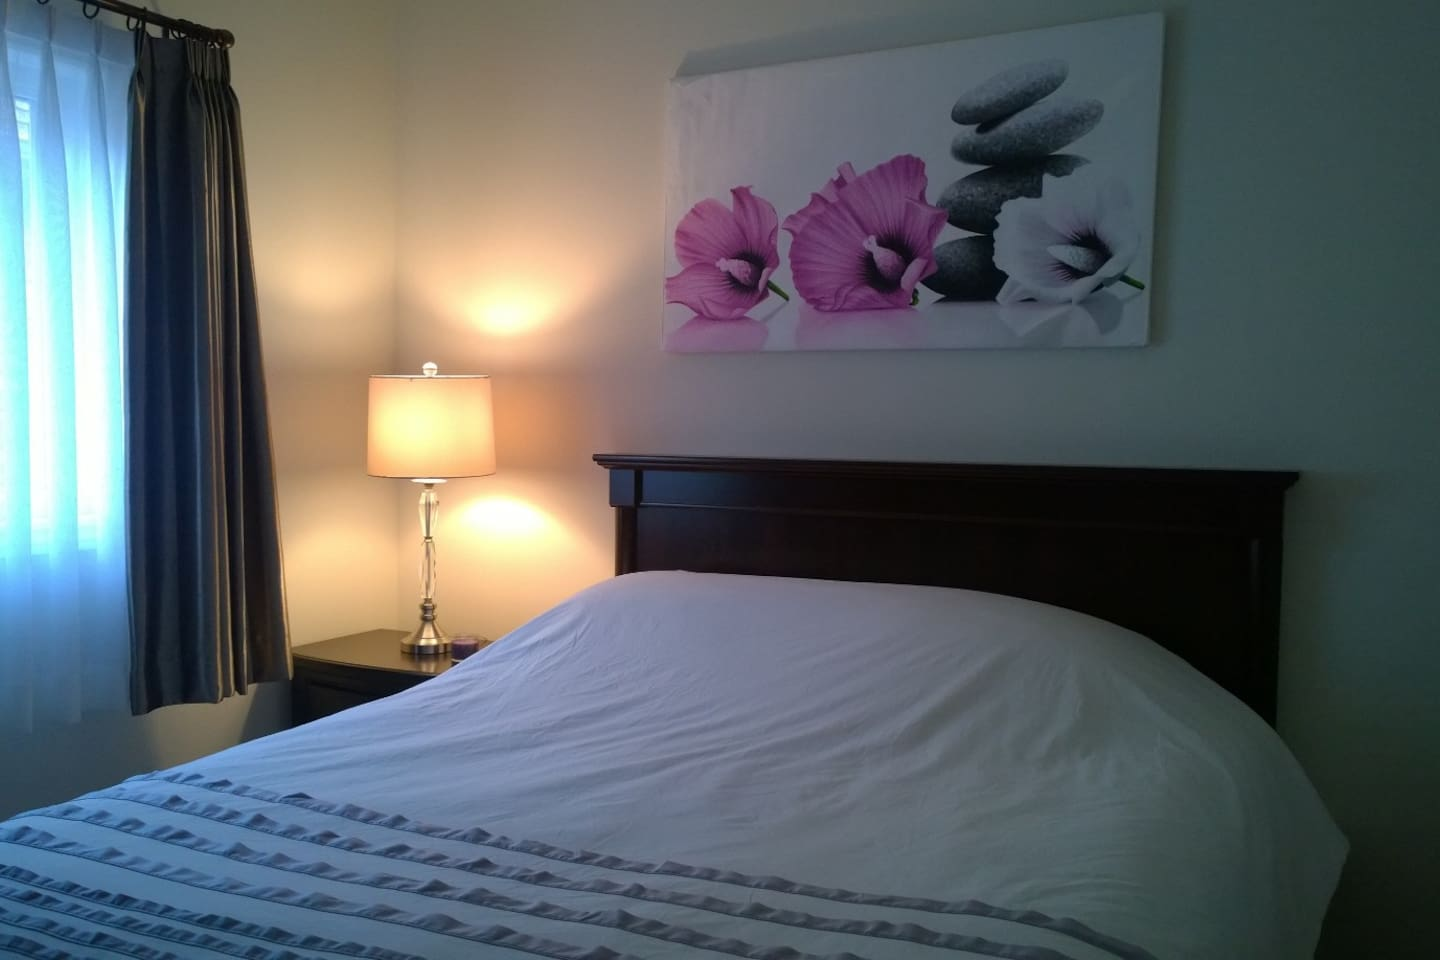 The purple and white bedroom with private bedroom